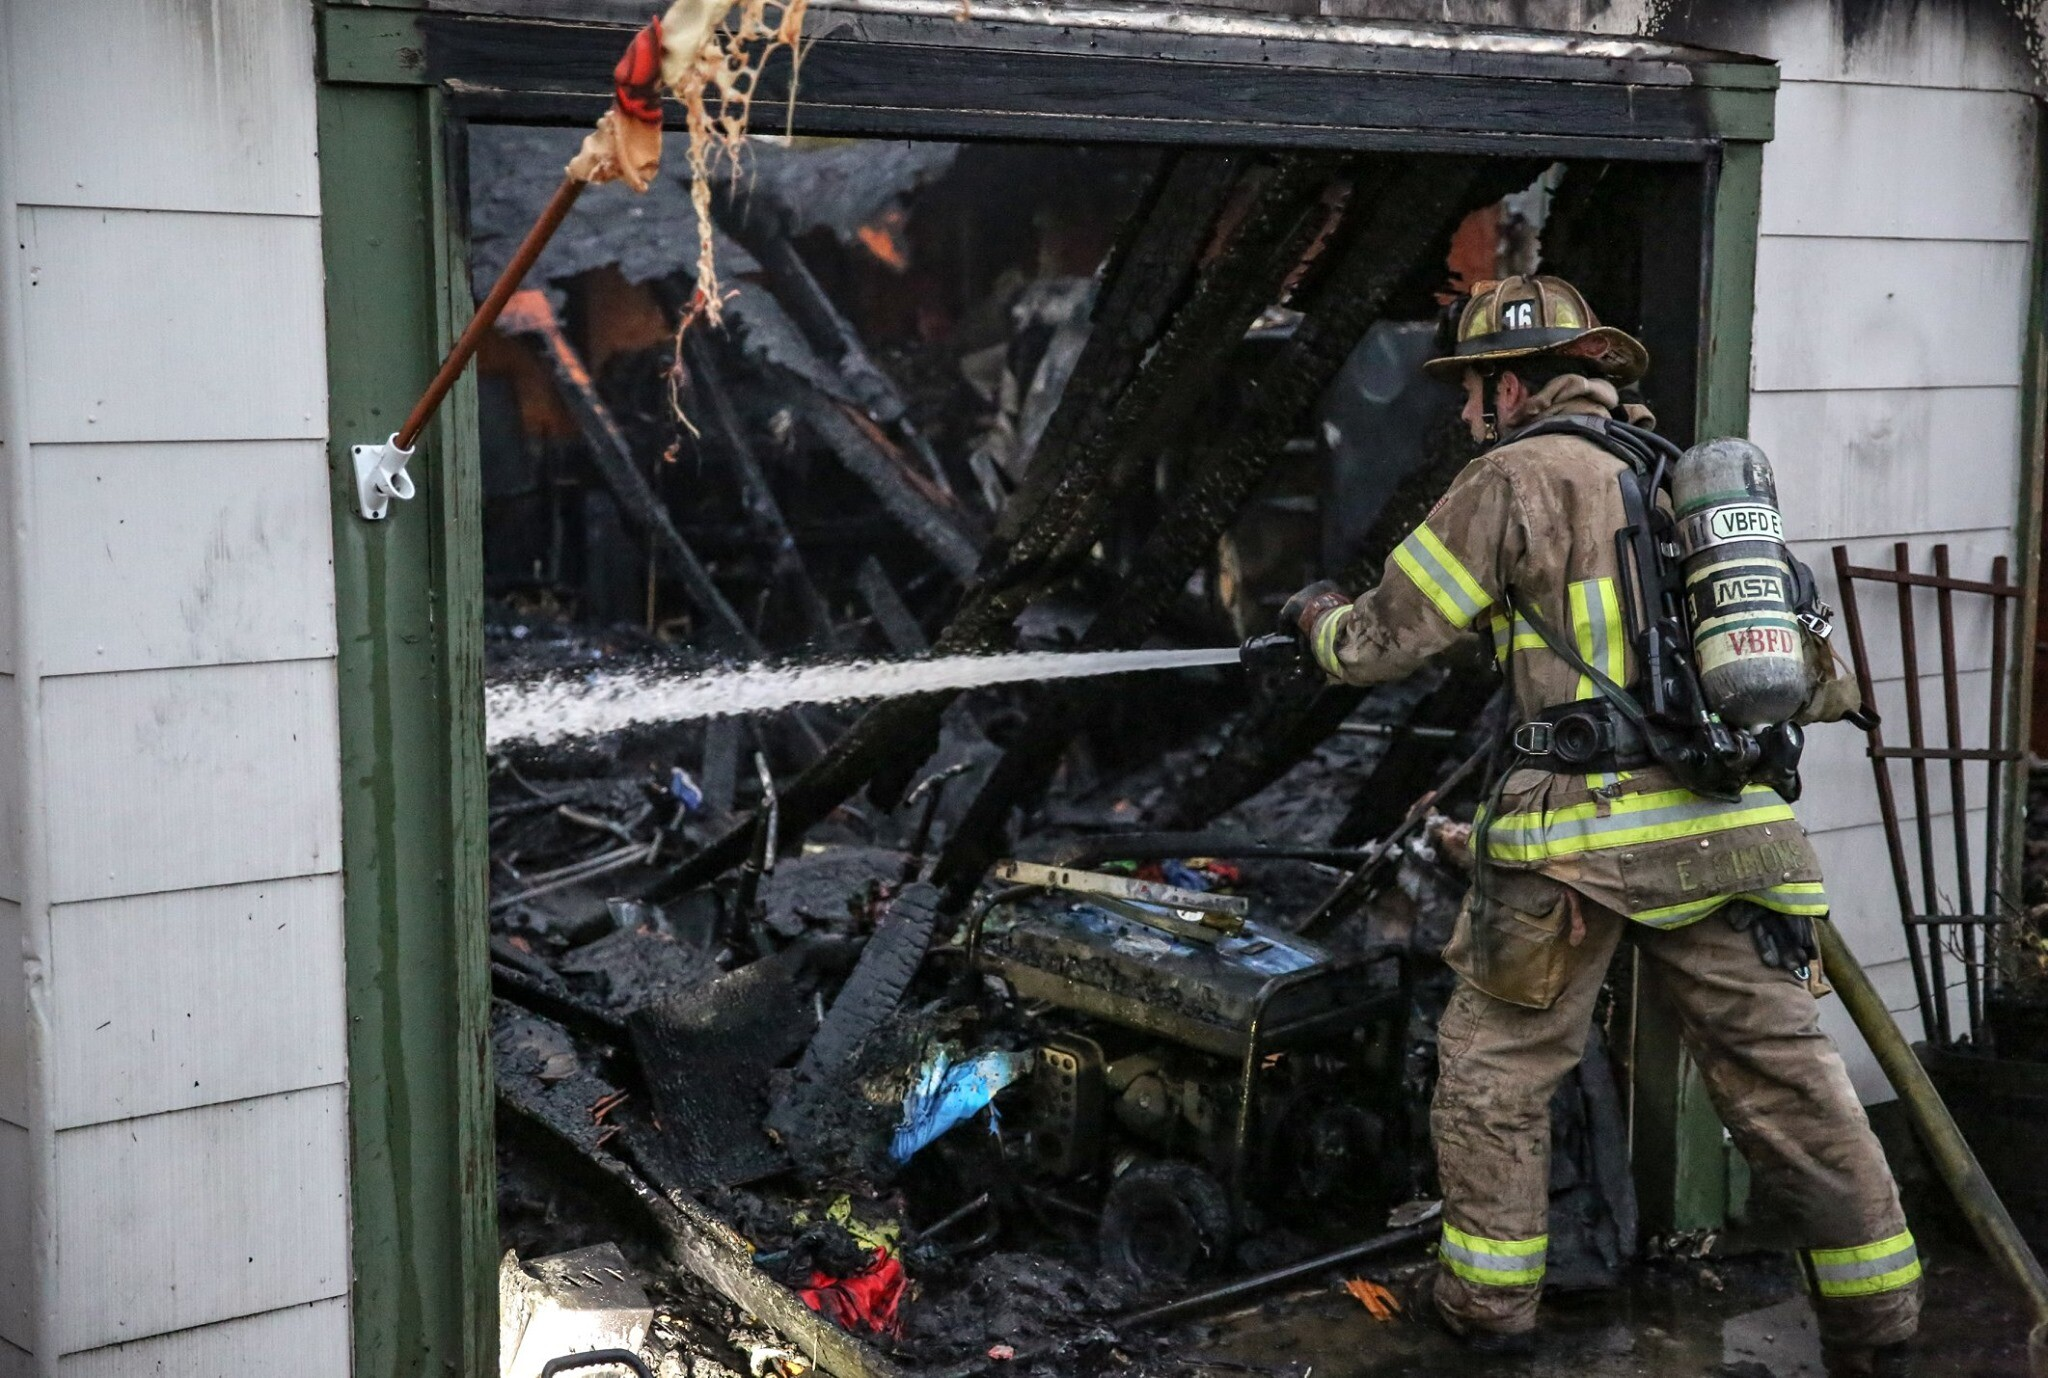 Photos: Firefighters respond to early morning garage fire in Virginia Beach